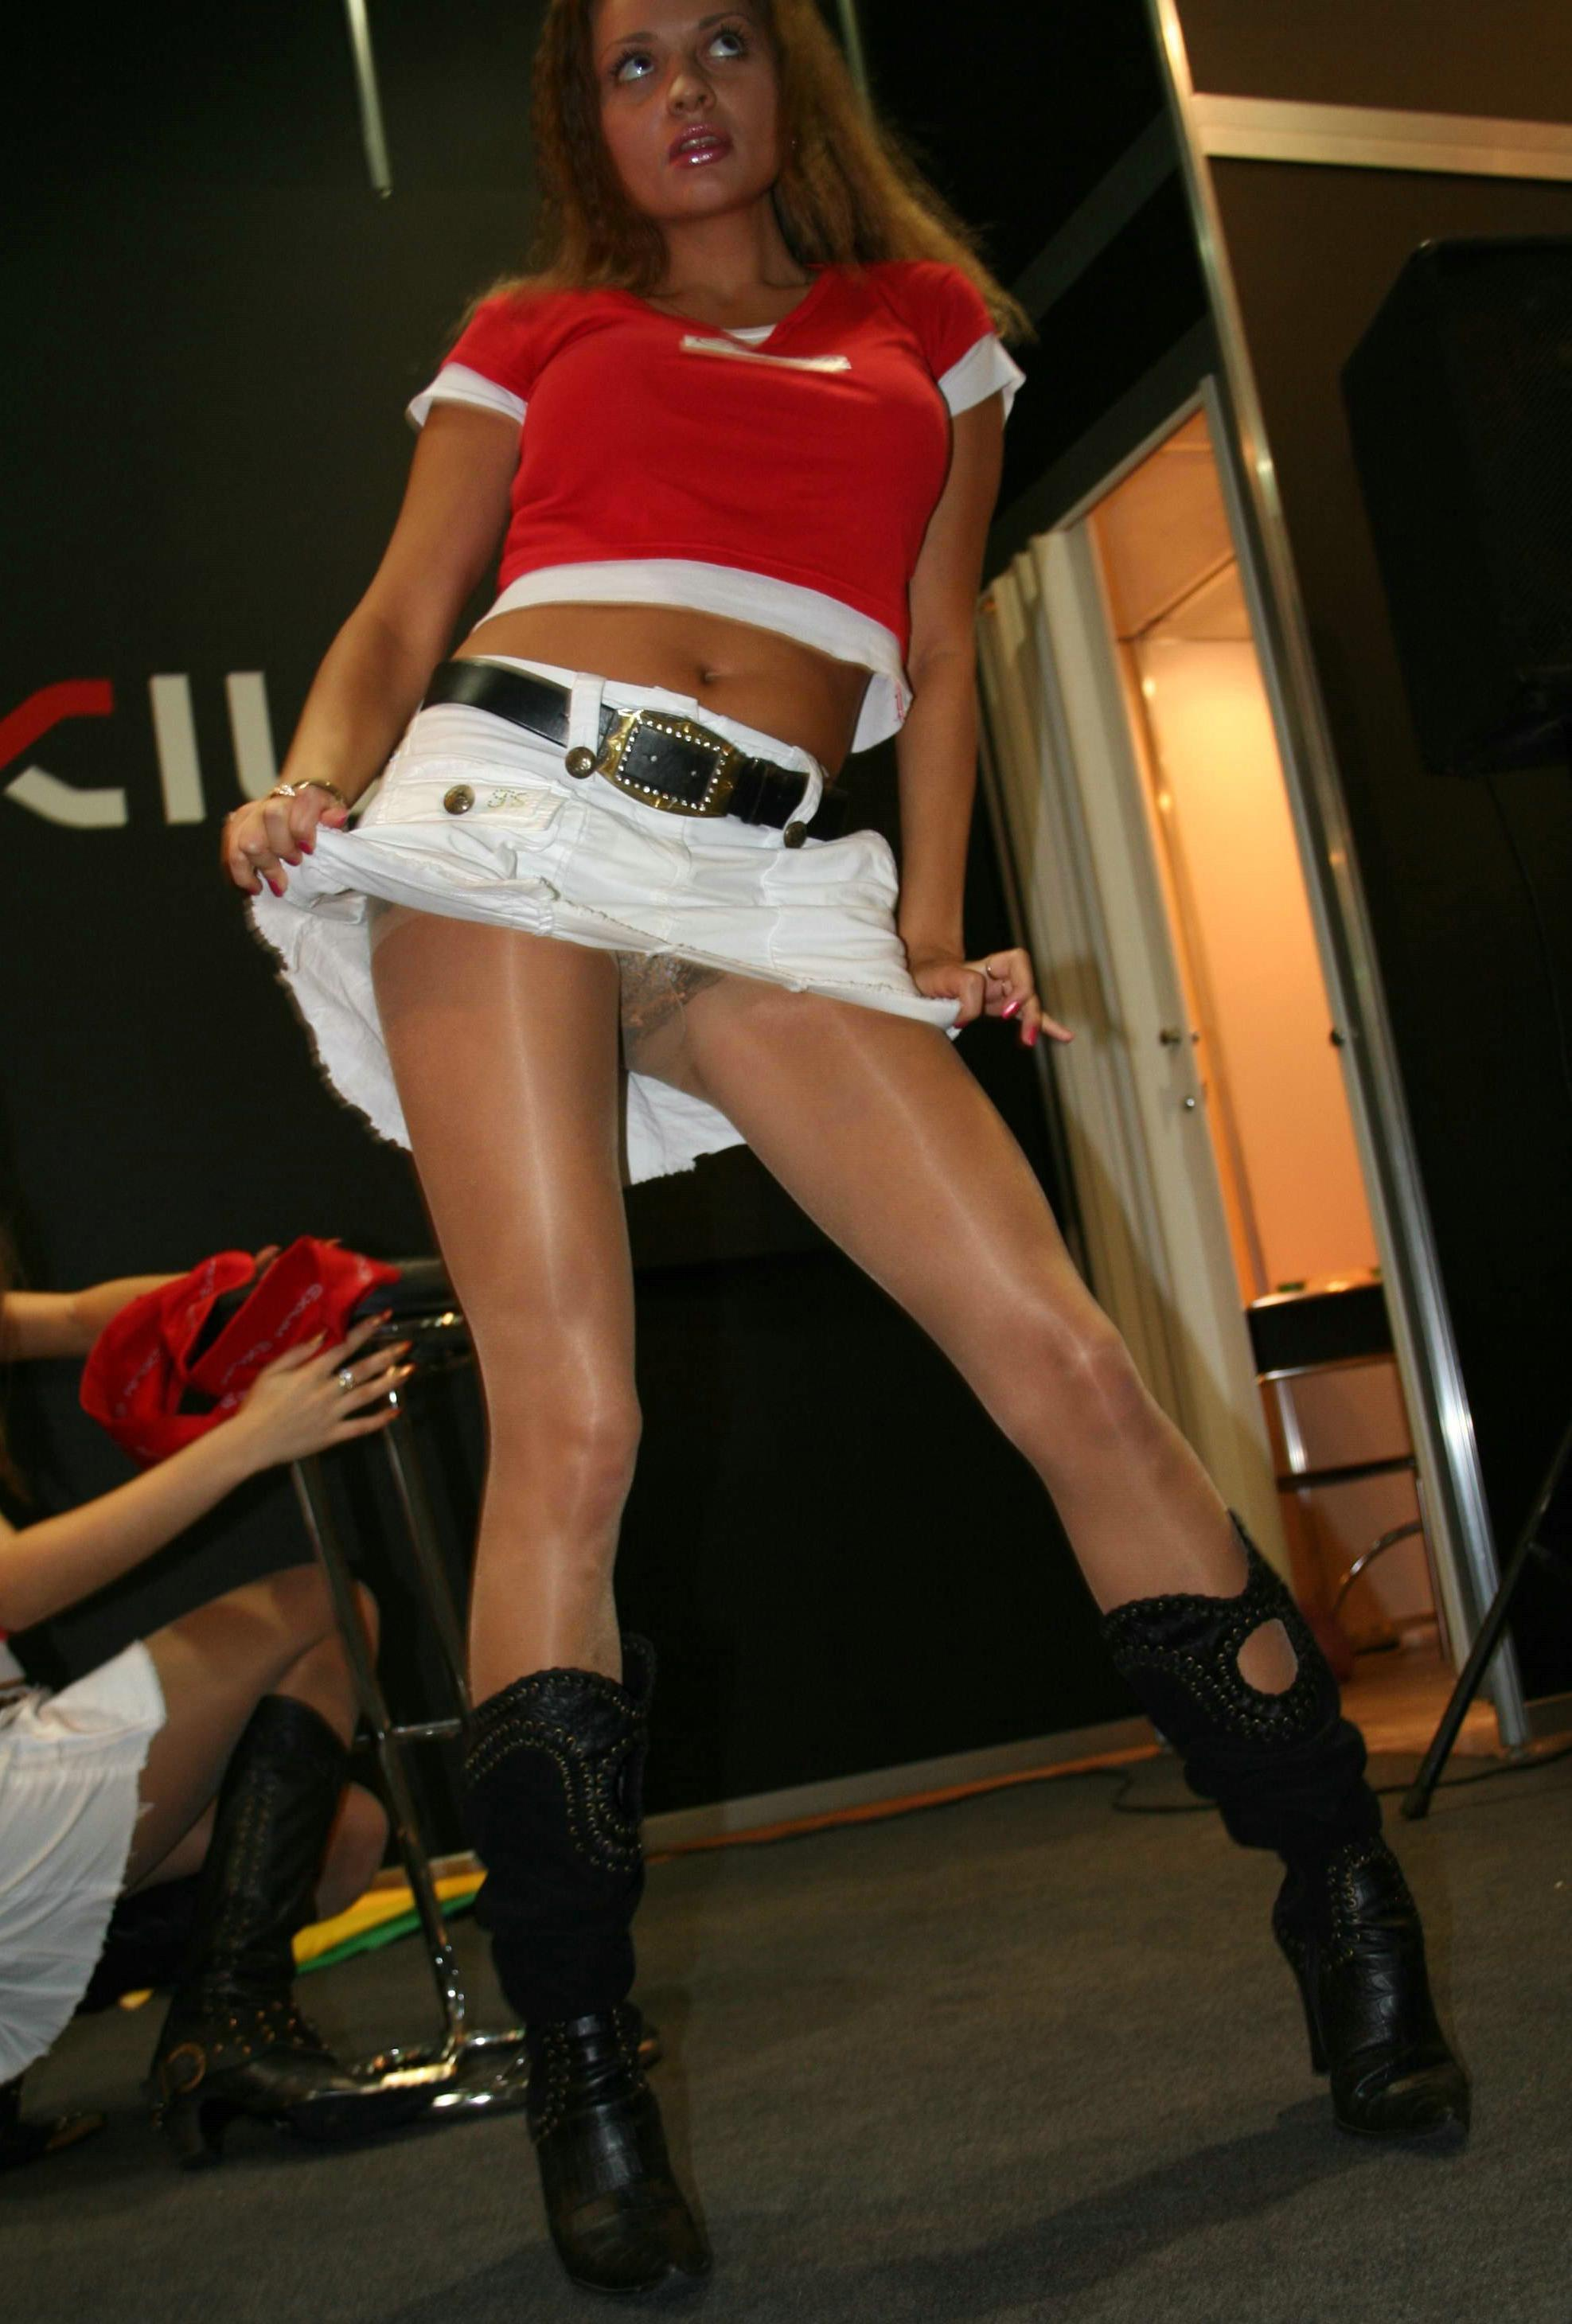 Air Hostess Picture Galleries  AZ Gals Free porn from A to Z